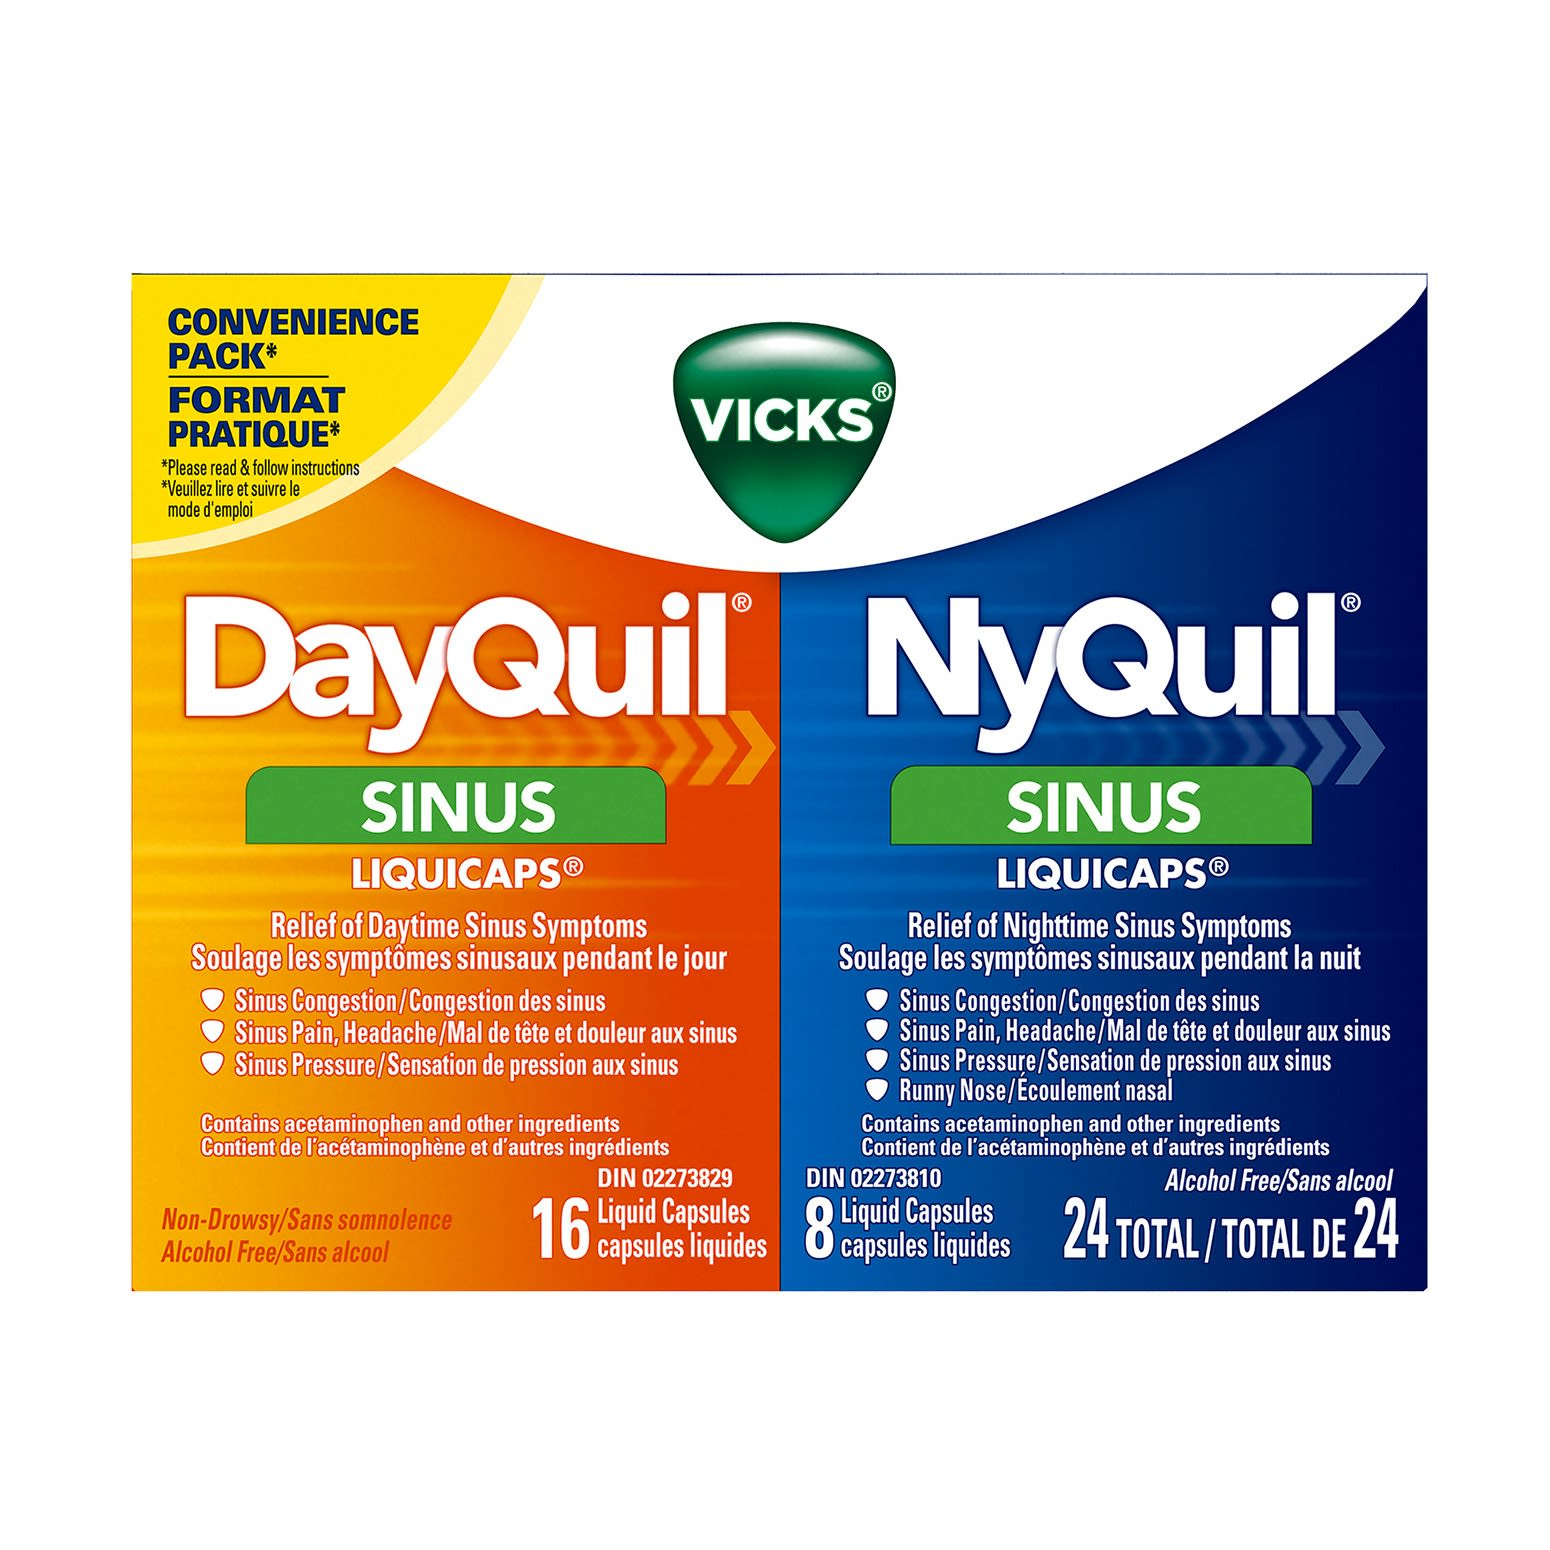 dayquil-and-nyquil-sinus-convenience-pack